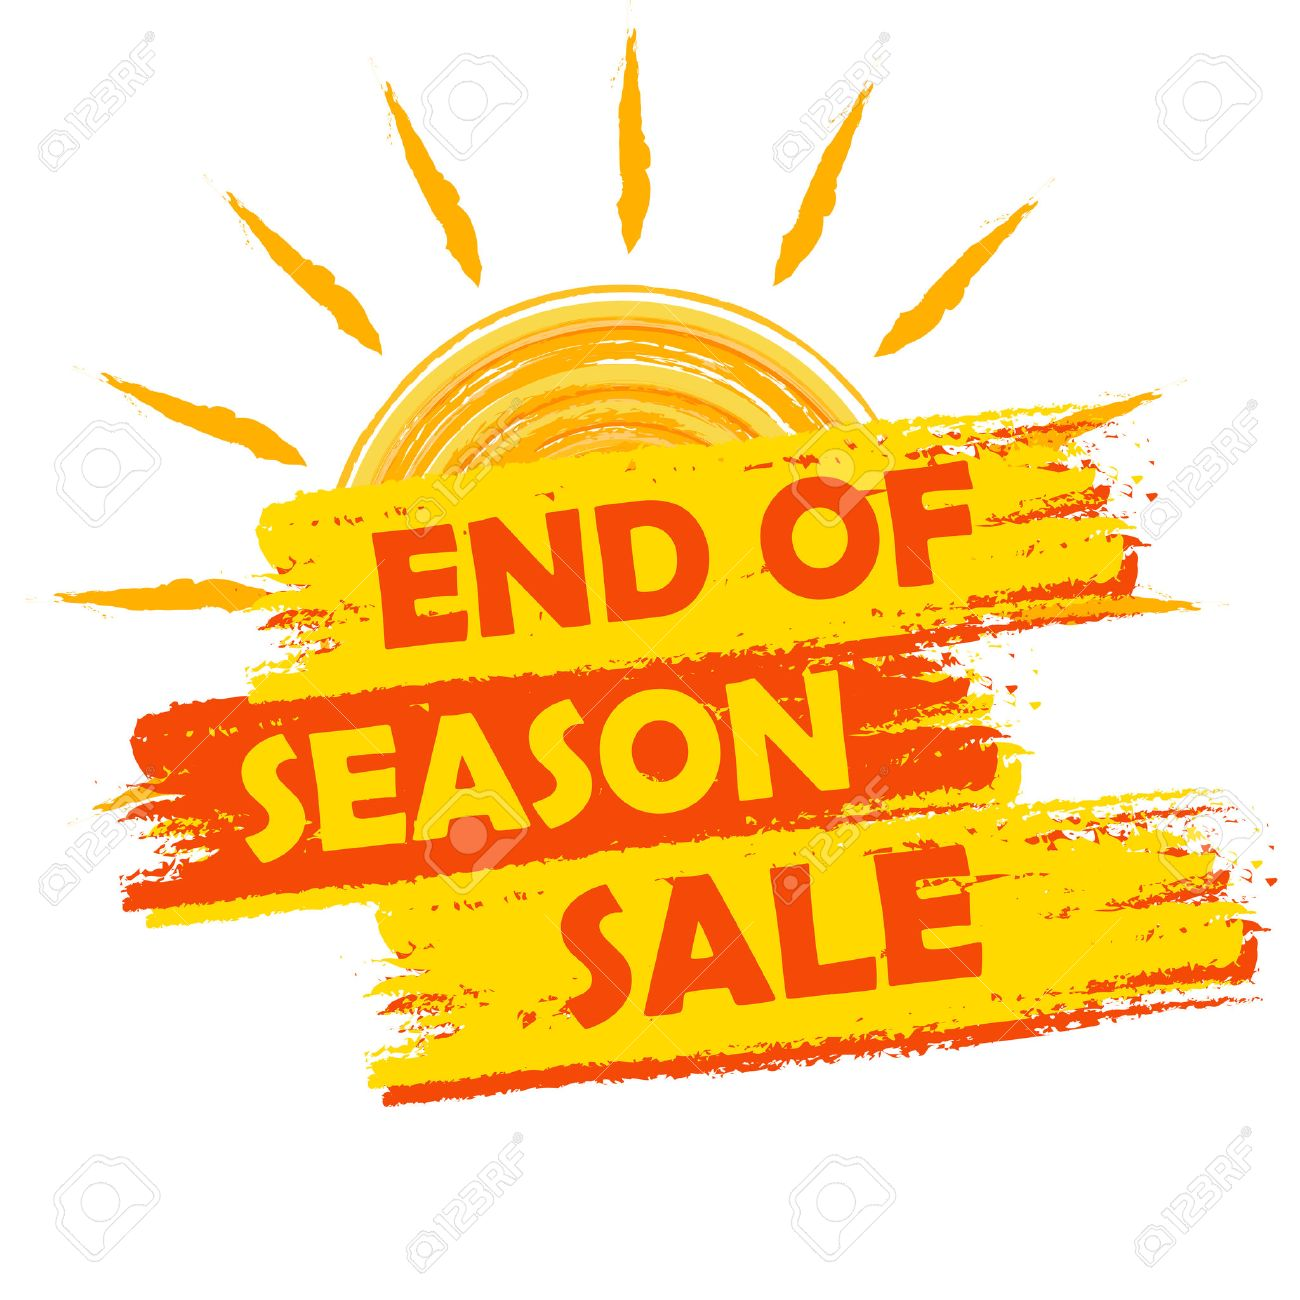 1ba52ed88ca end of season sale banner - text in yellow and orange drawn label with  summer sun